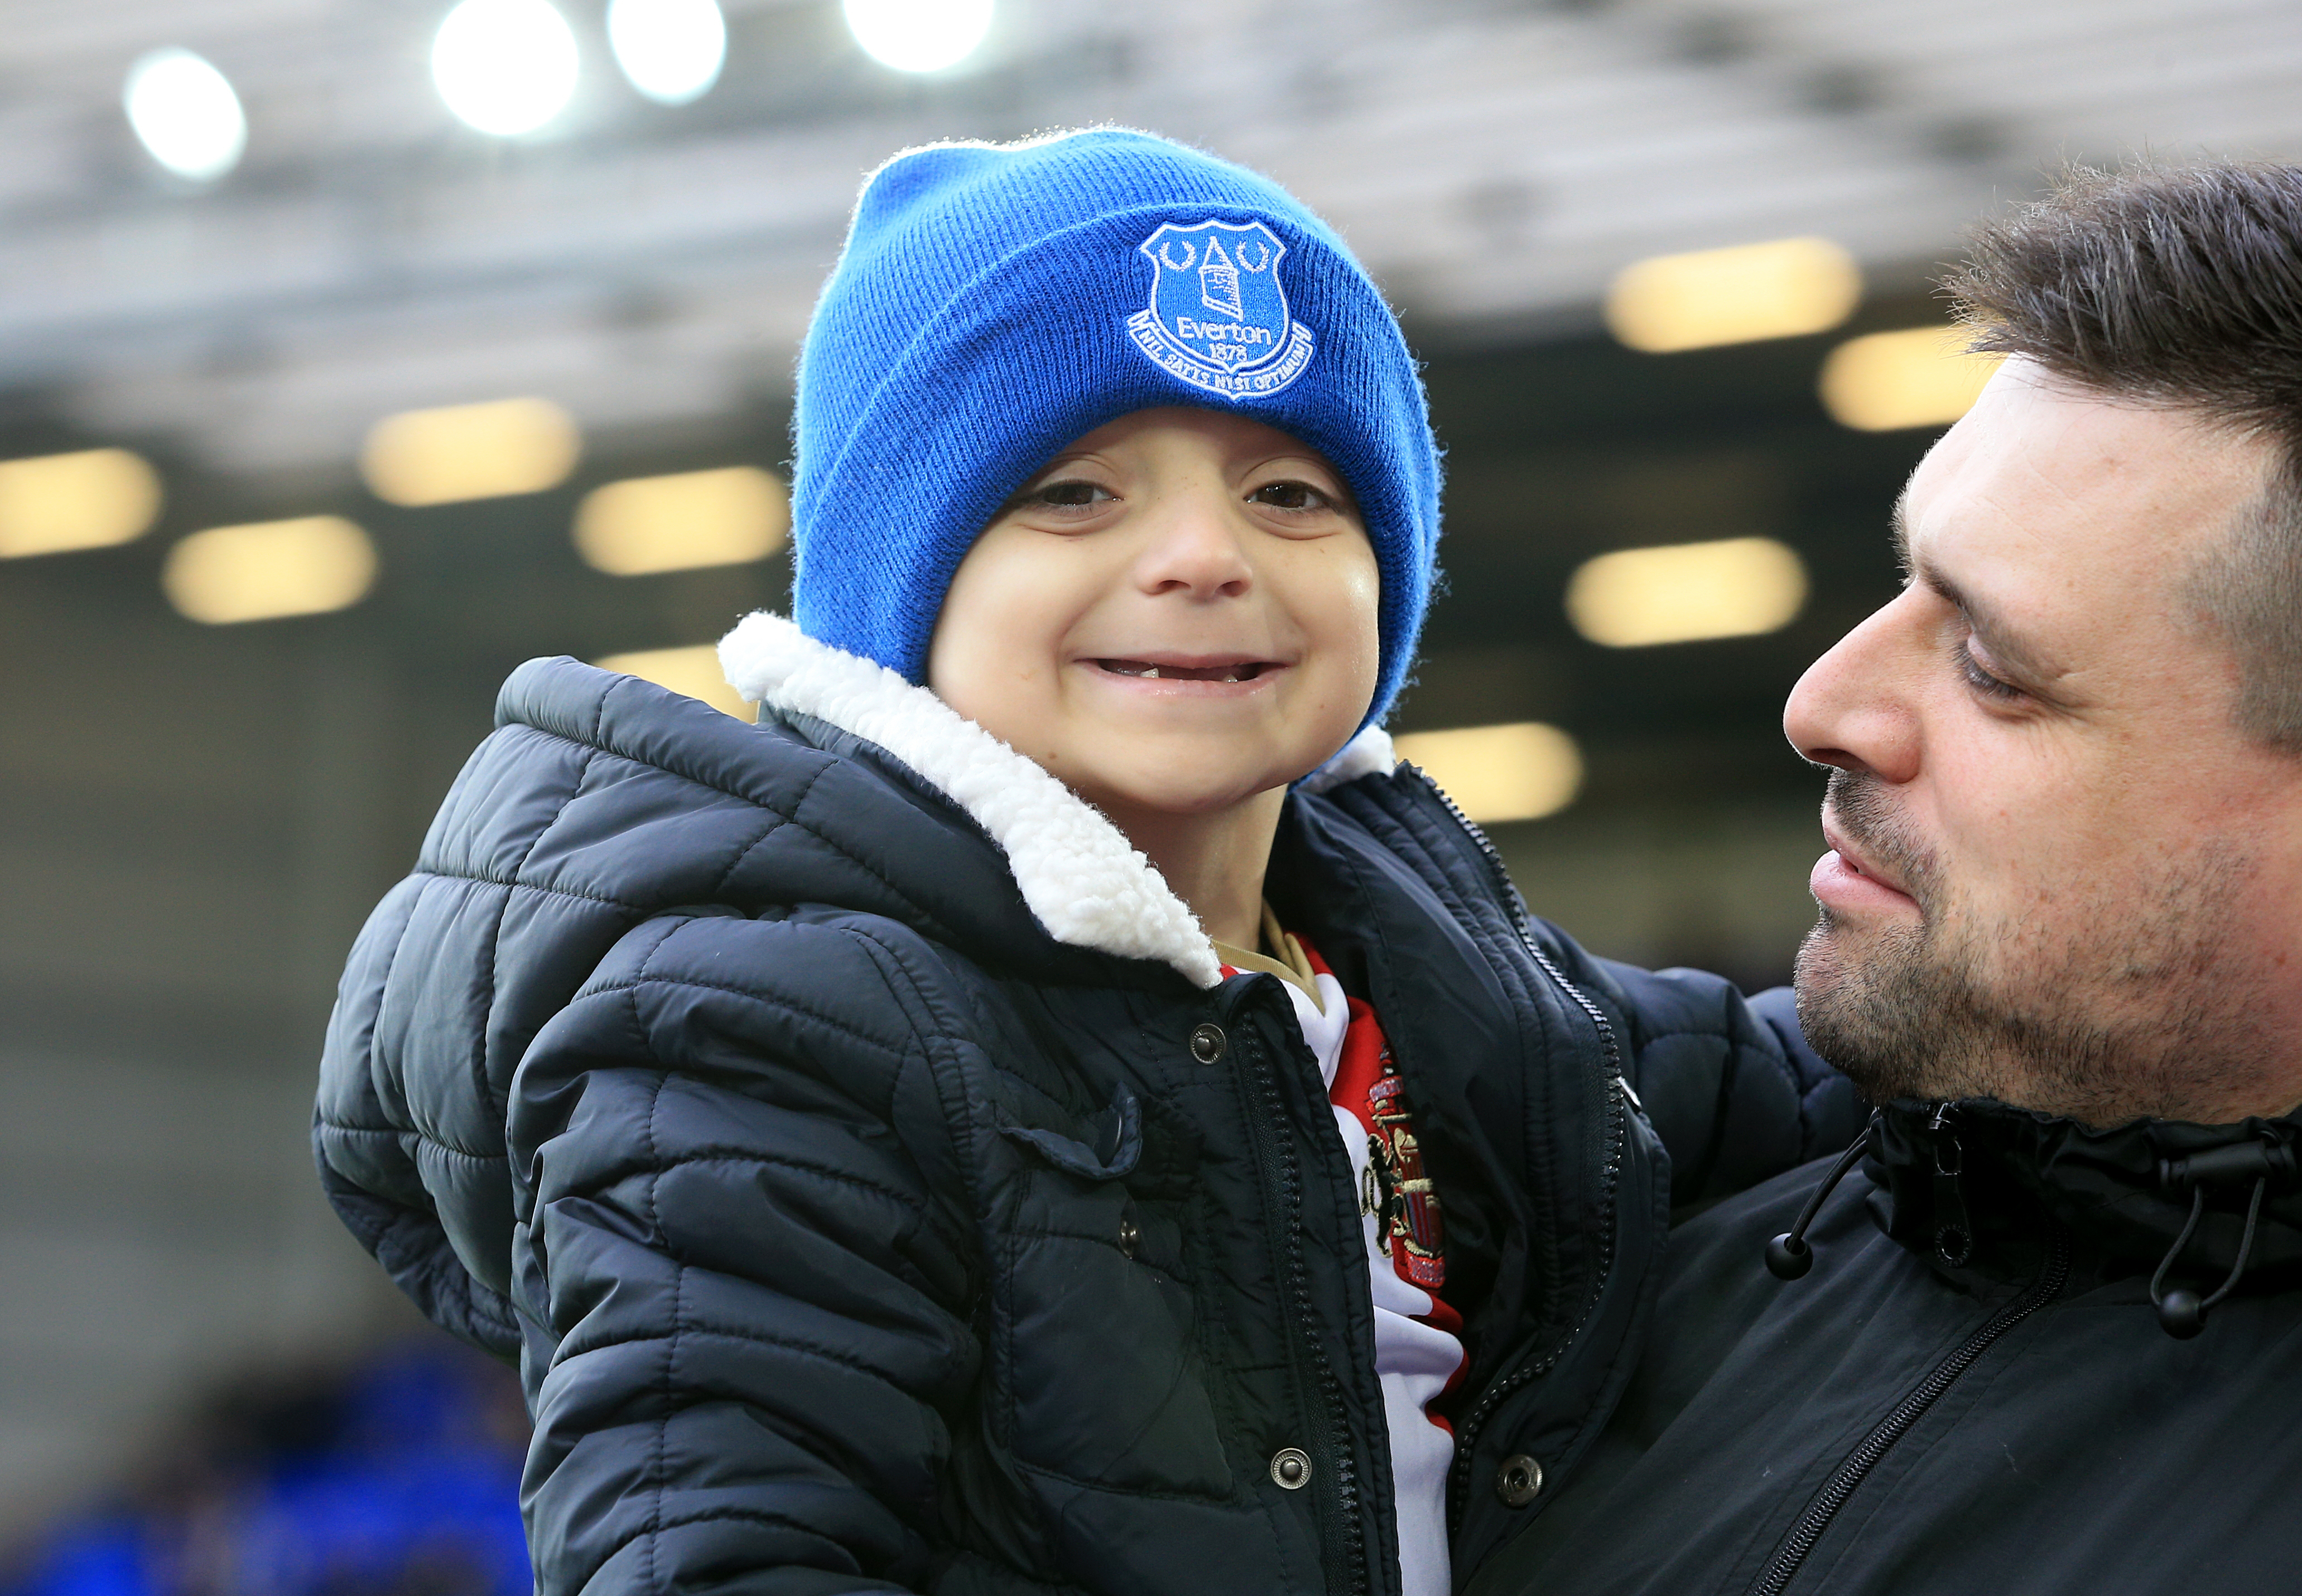 Bradley Lowery continues to inspire others. Credit: PA Images